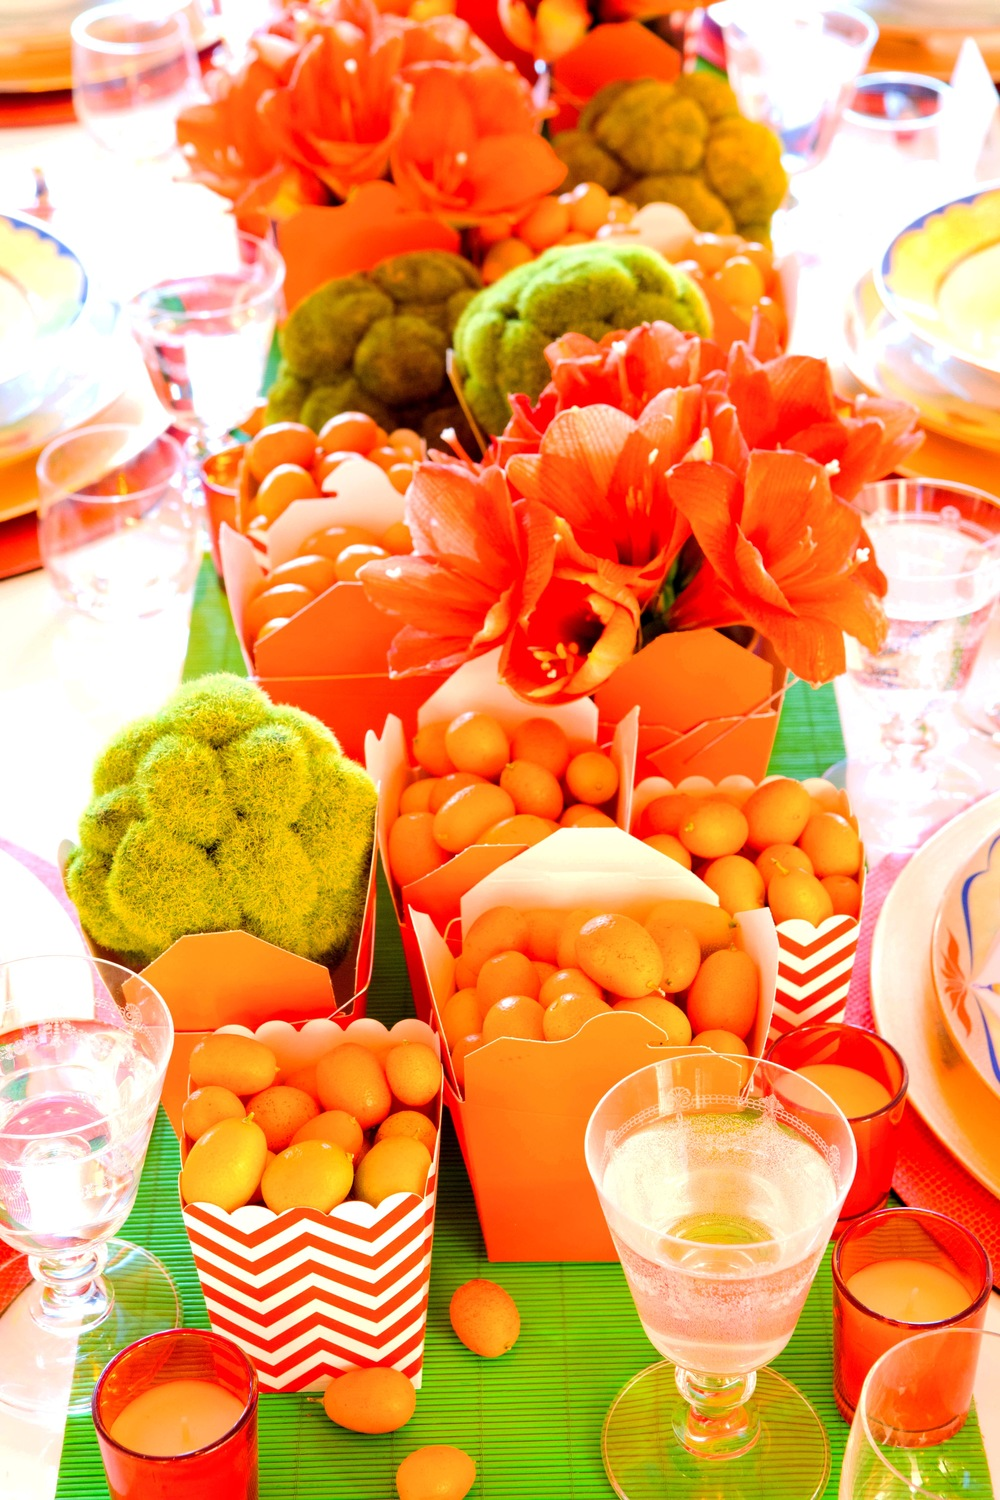 New Year Dinner Party Ideas Part - 50: Orange And Green Tablescape.JPG